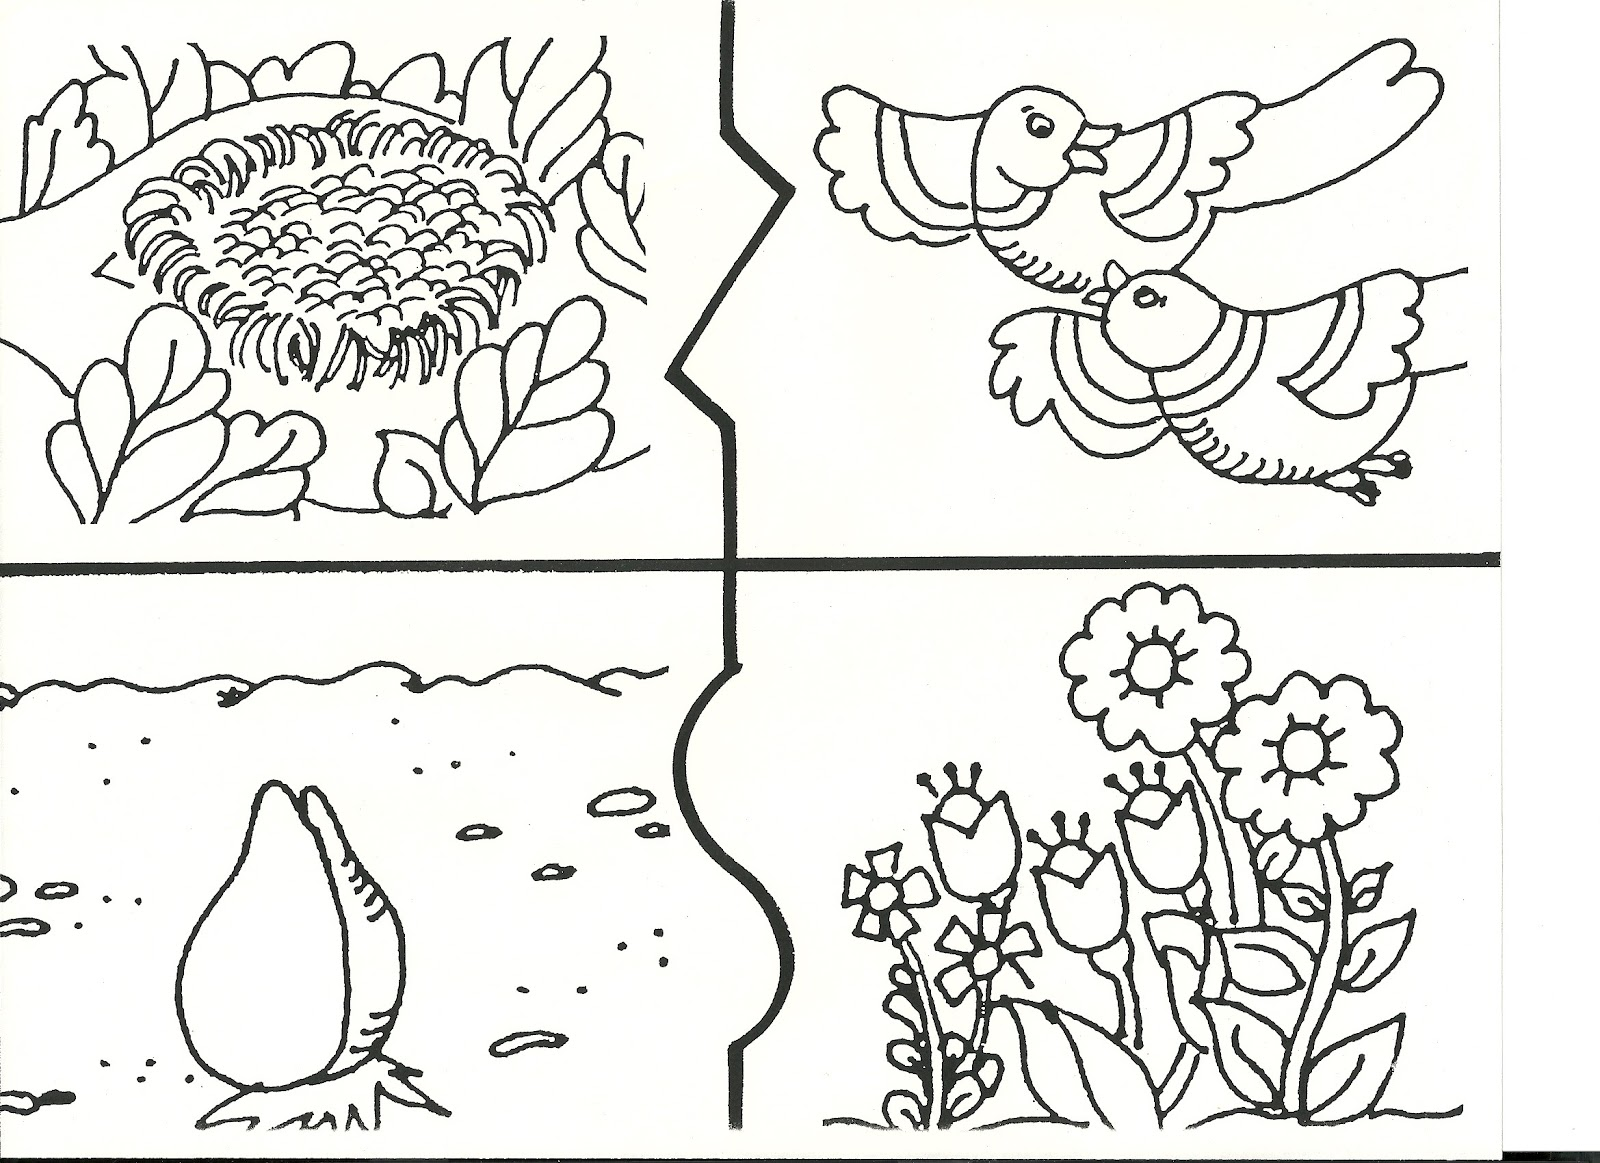 jesus miracles coloring pages - miracles of jesus coloring pages 19 photo gallery